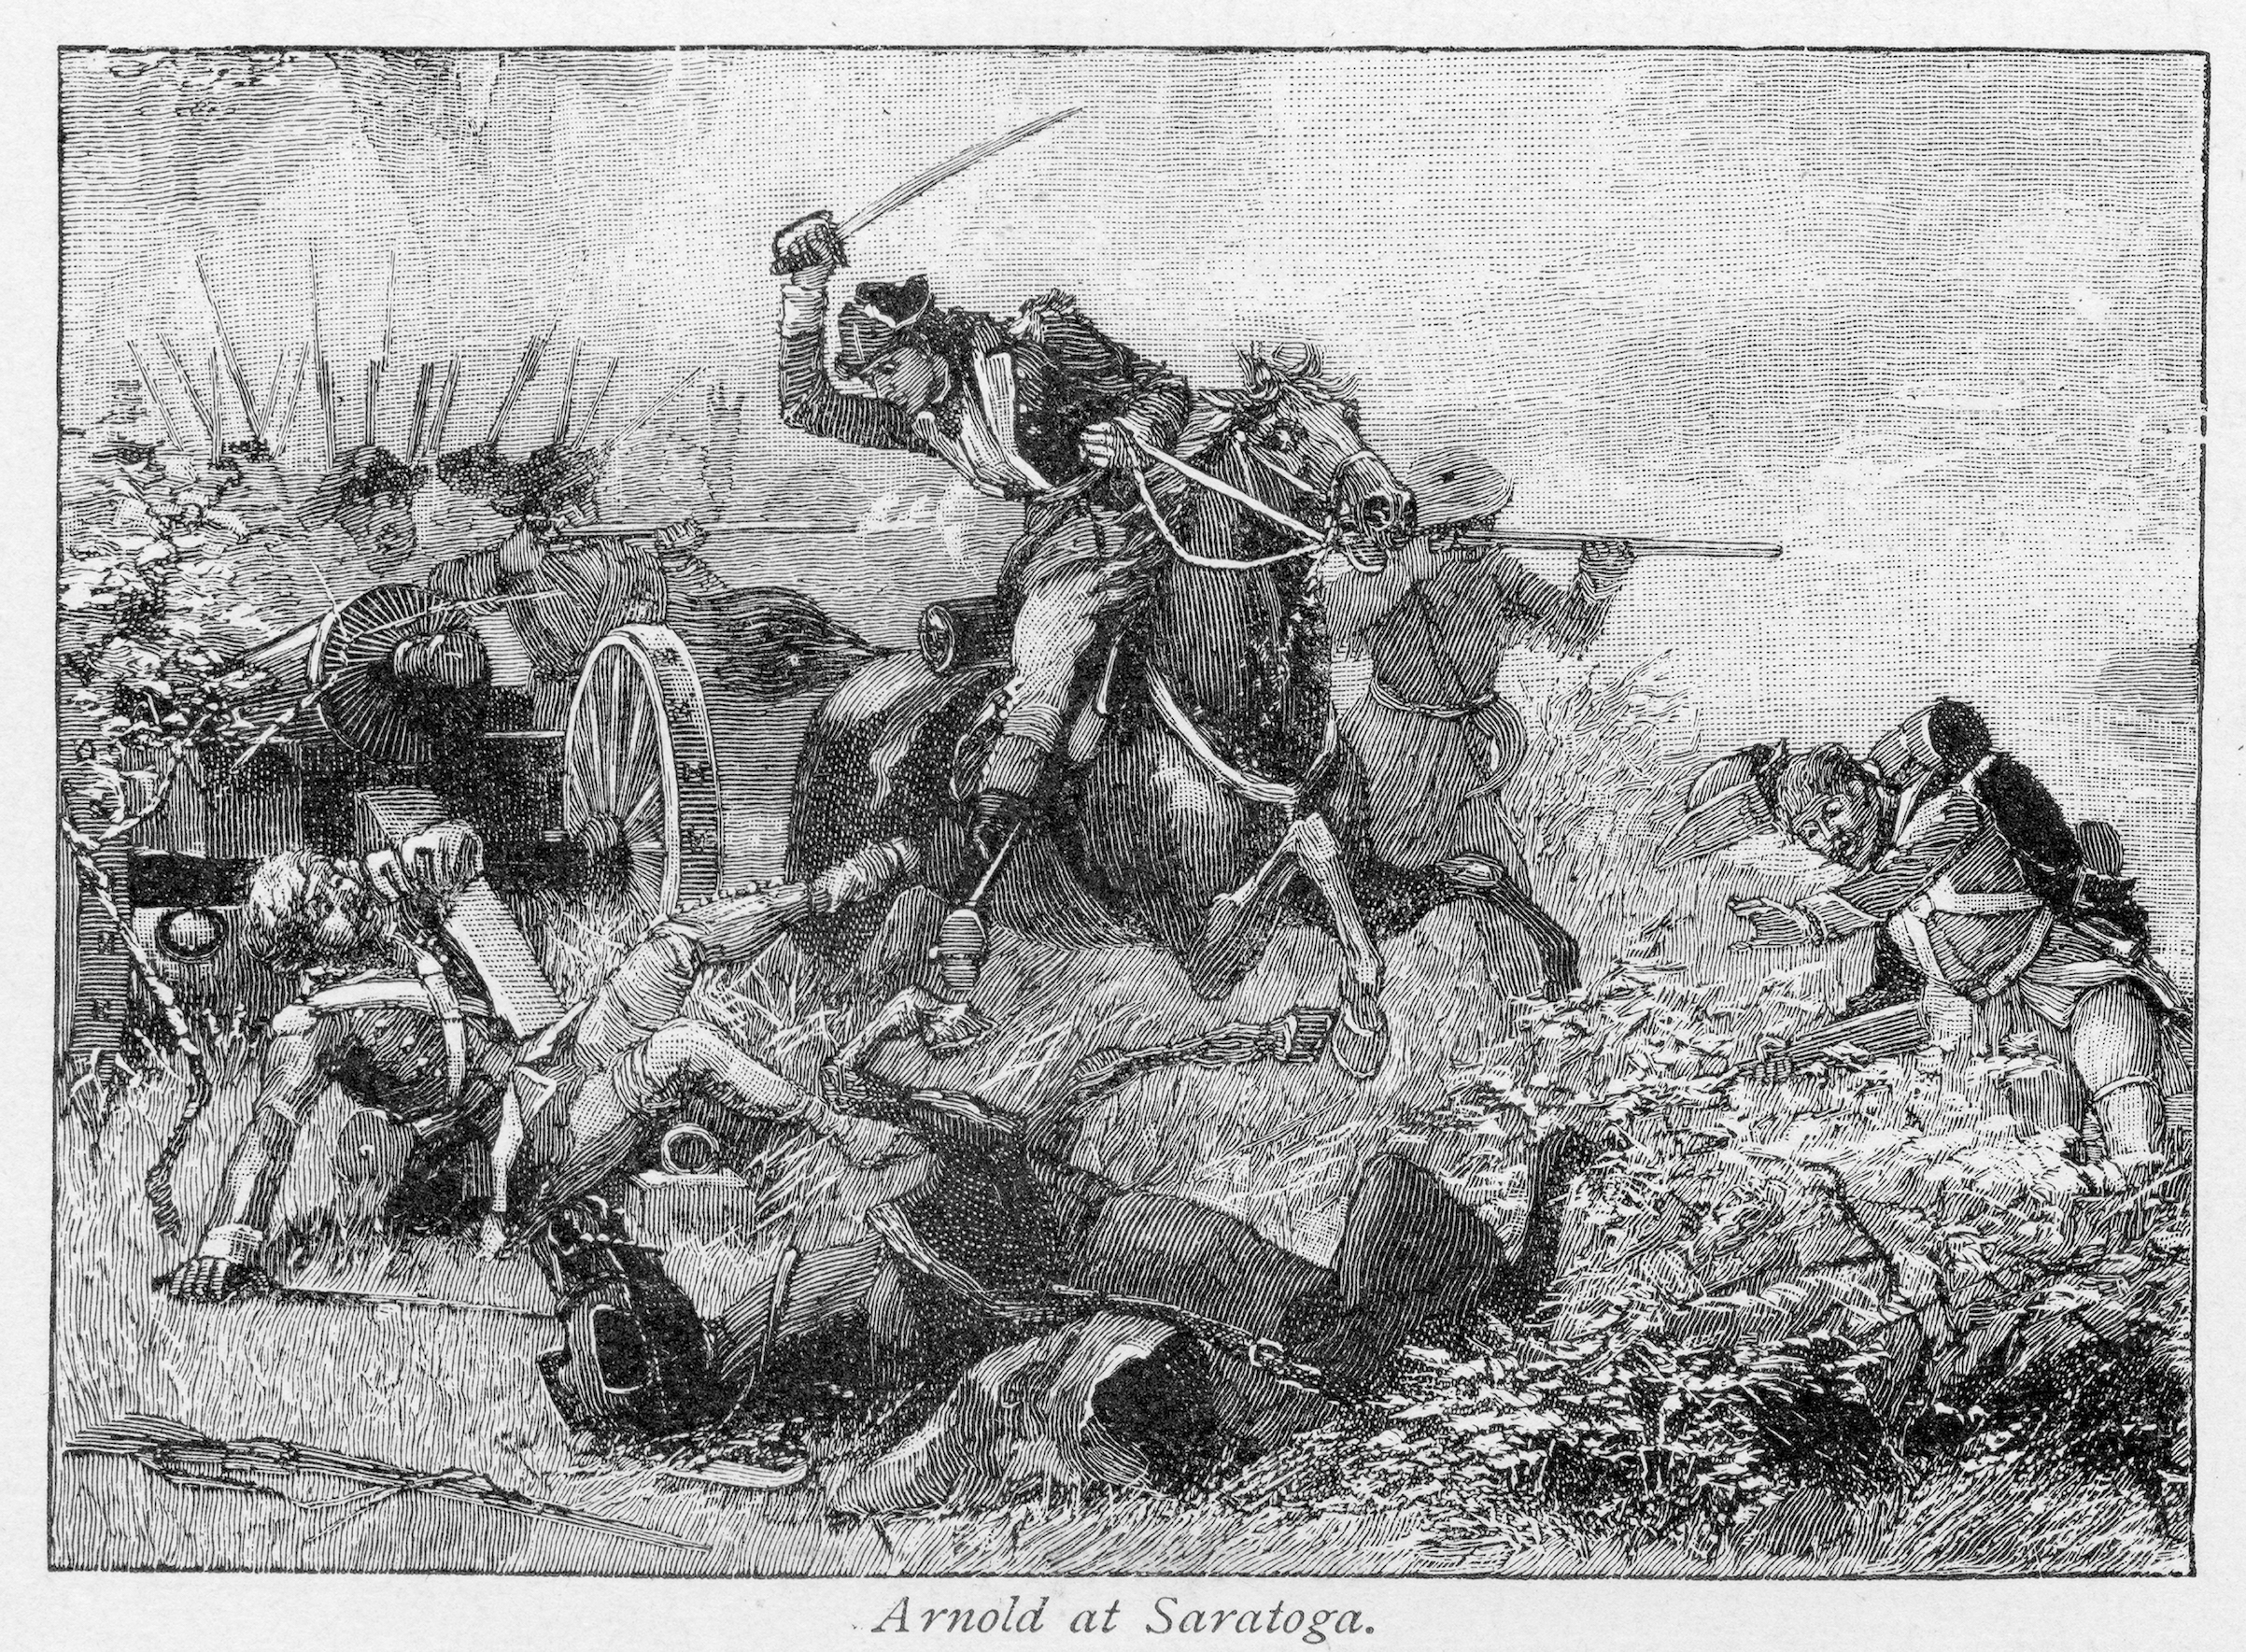 Illustration showing Major General Benedict Arnold (1741 - 1801) rallying the American troops and performing heroically during the Battle of Saratoga, during the American Revolutionary War, Oct. 7, 1777. Published in Shinn's History of the American People, 1899.